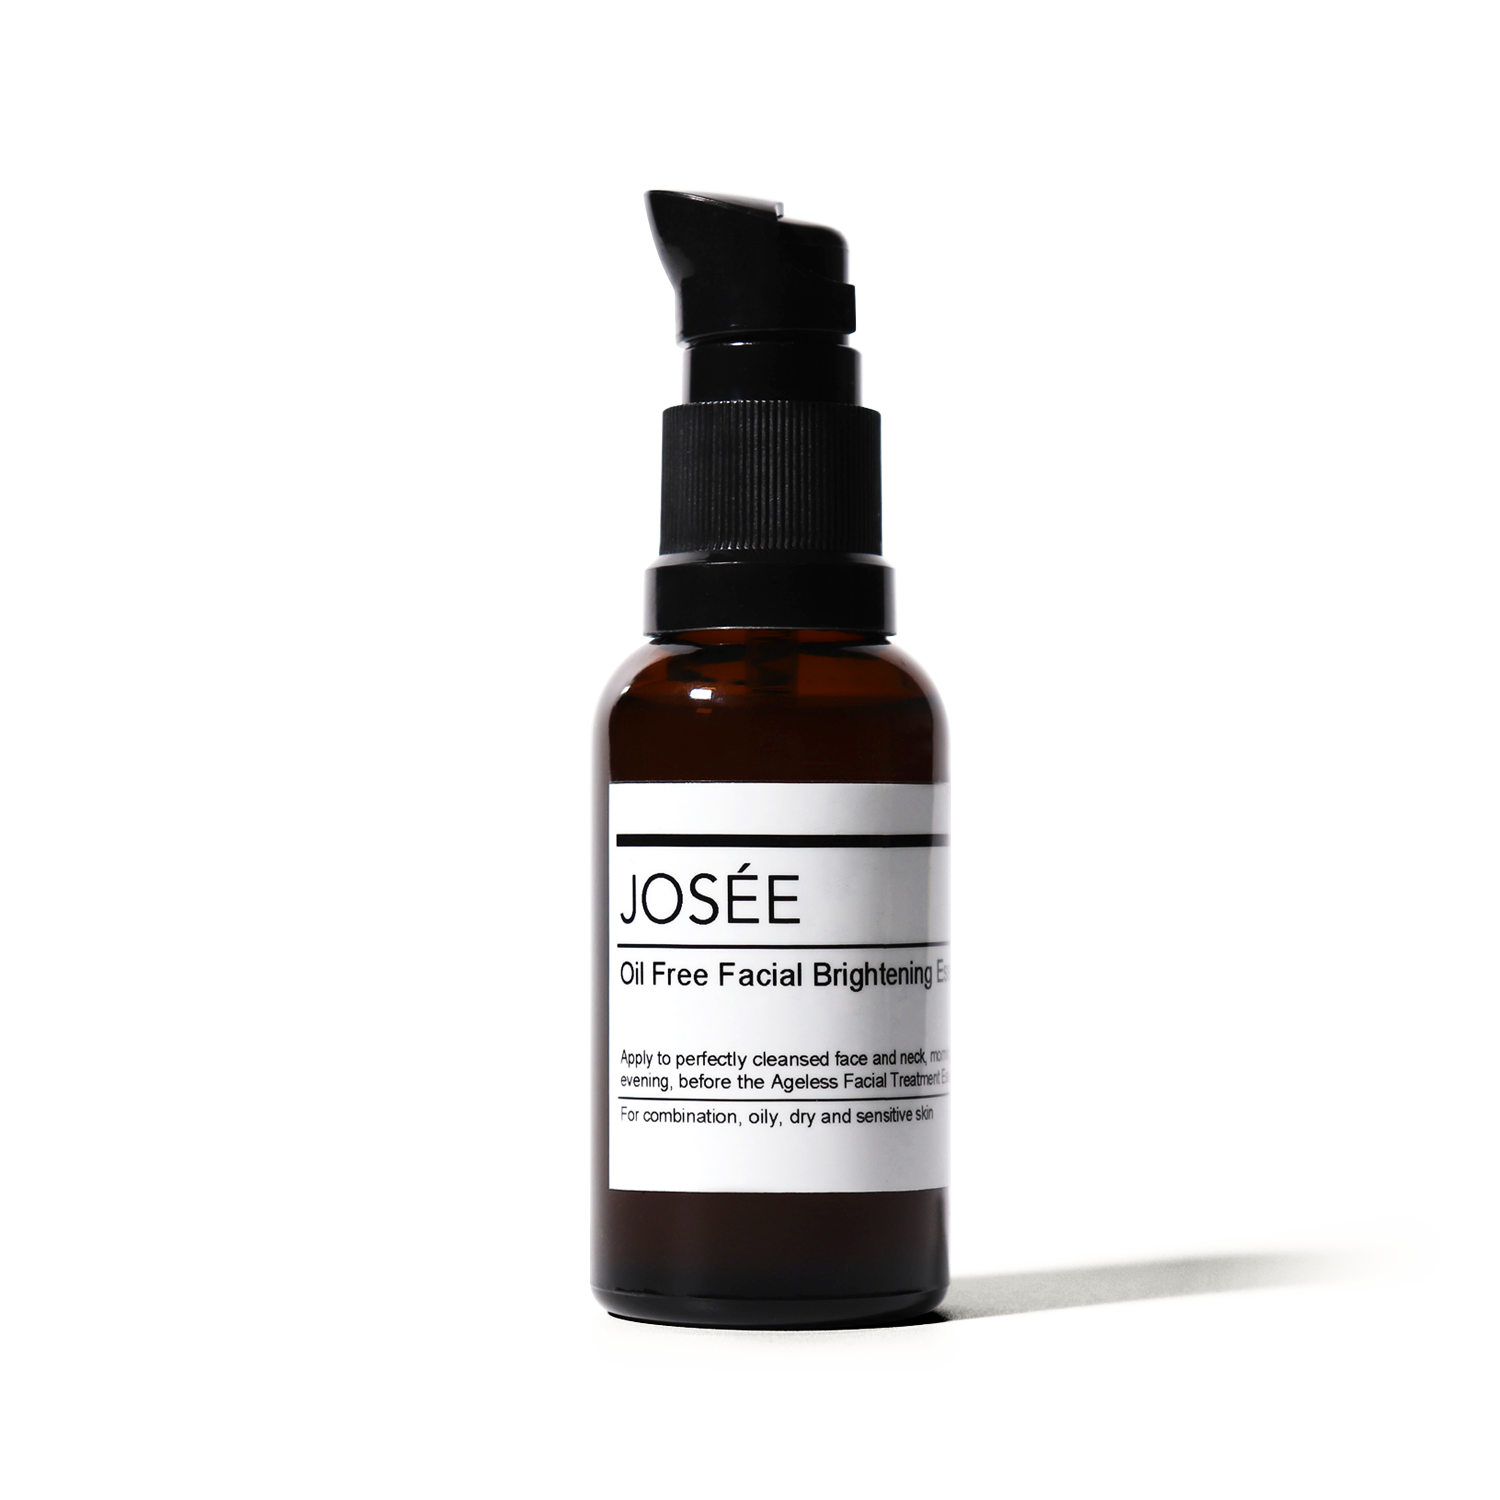 Oil Free Facial Brightening Serum 30ml - JOSÉE Organic Beauty & Perfume